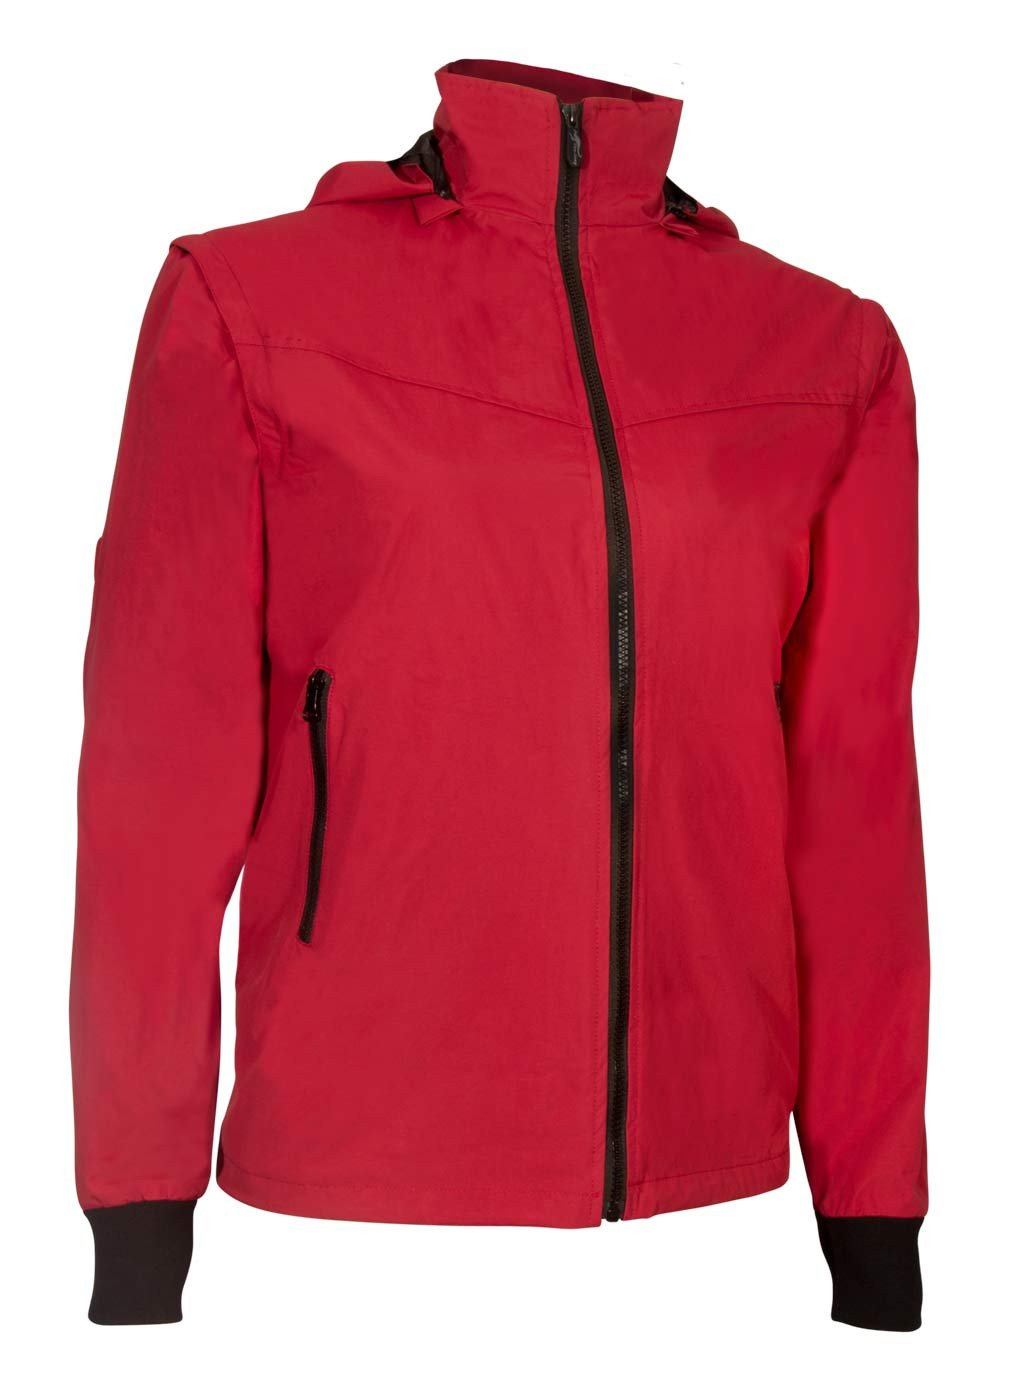 Red Womens Soft Shell Travel Jacket | Global Travel Clothings